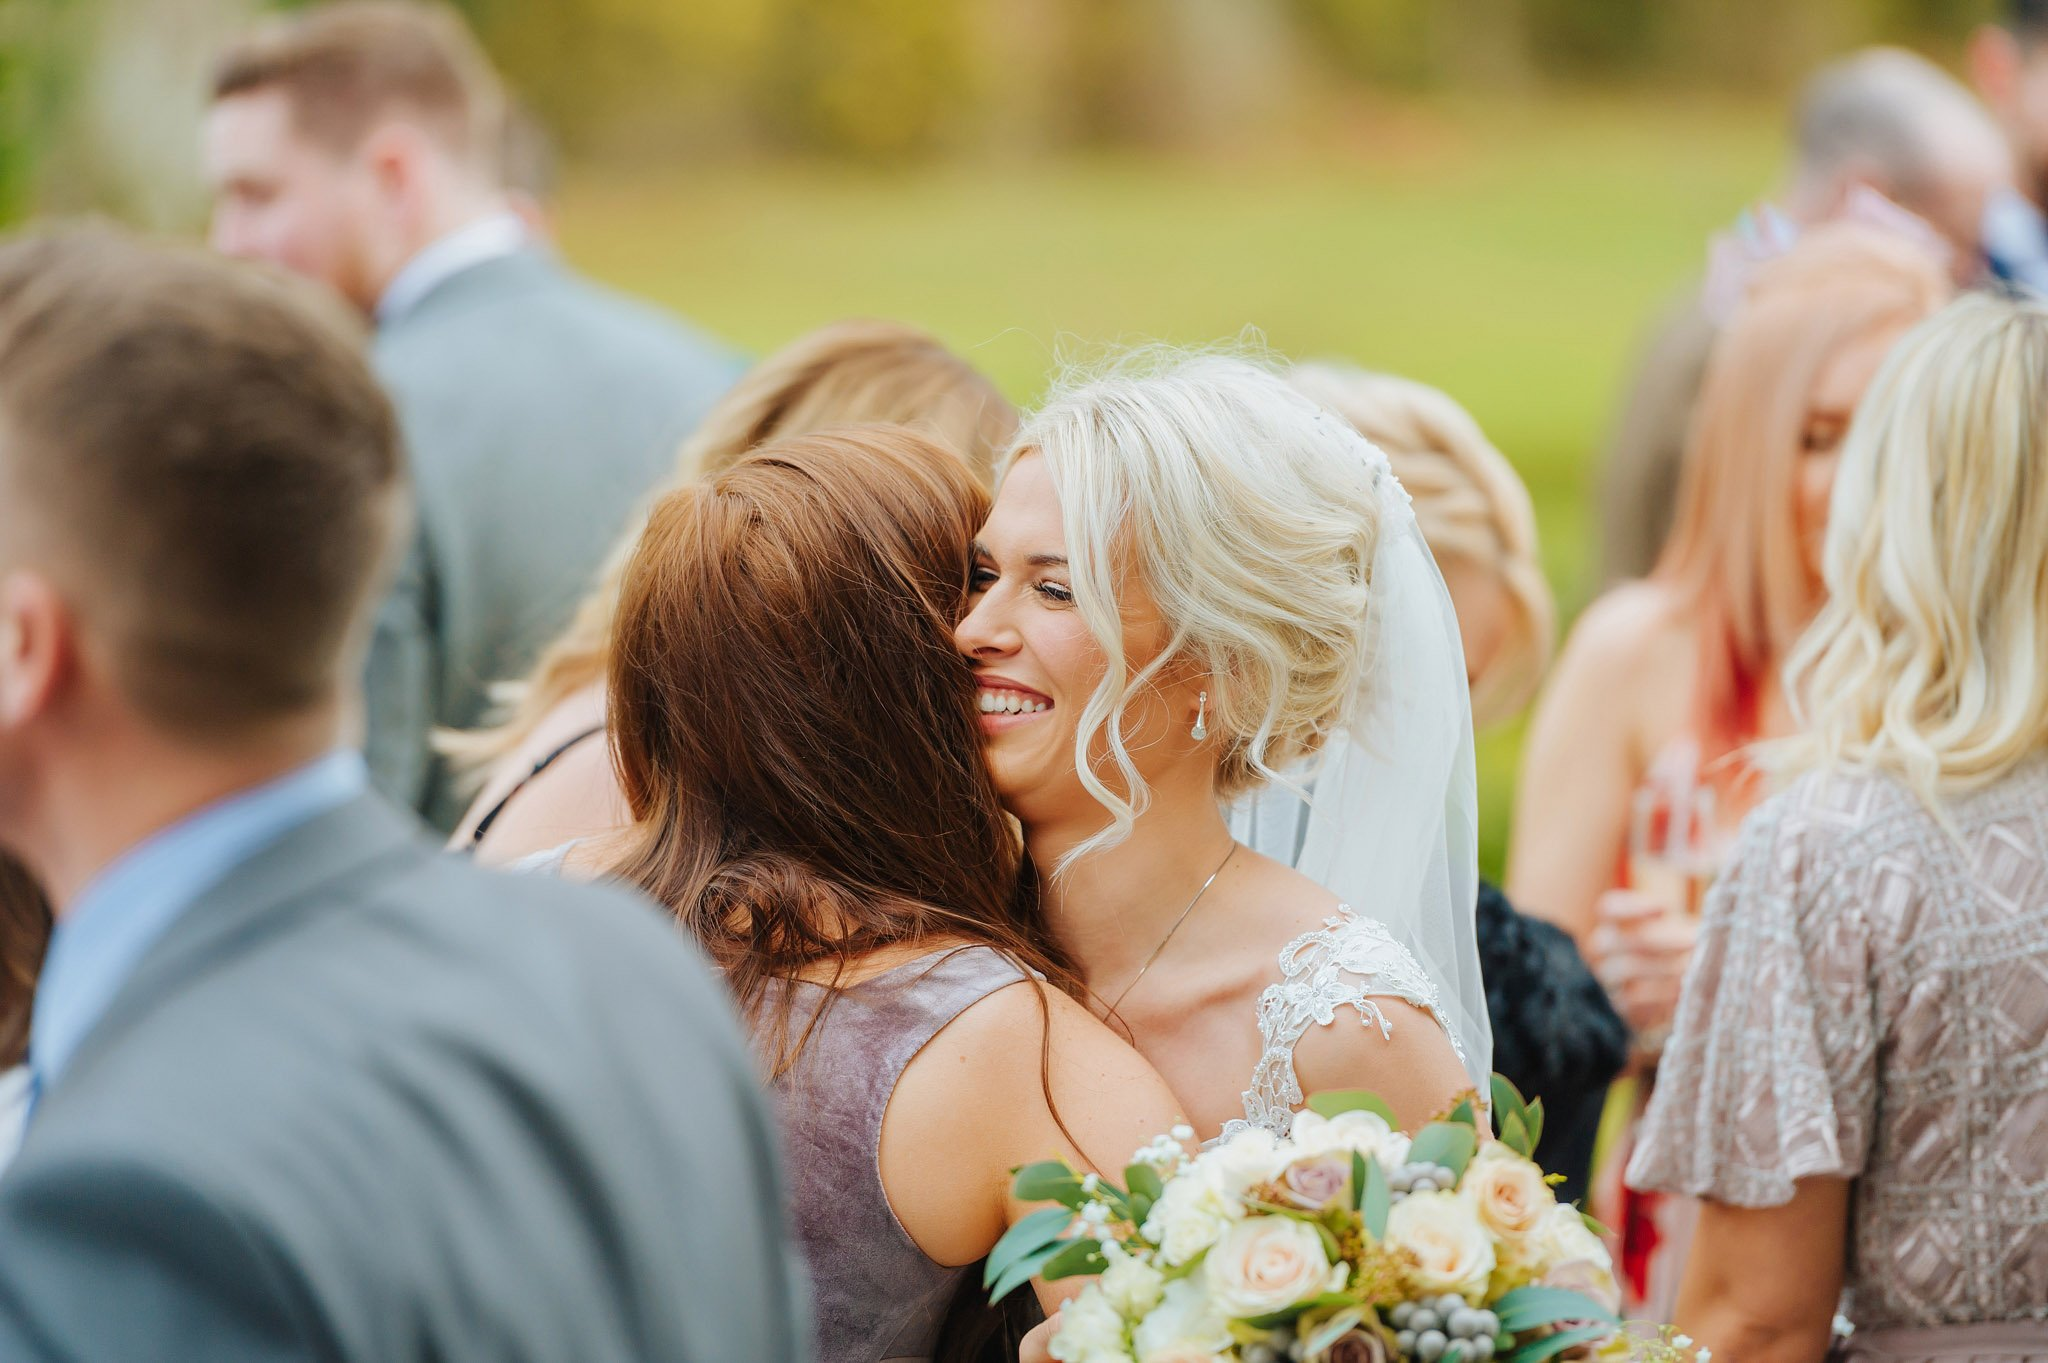 lemore manor wedding herefordshire 54 - Lemore Manor wedding, Herefordshire - West Midlands | Sadie + Ken